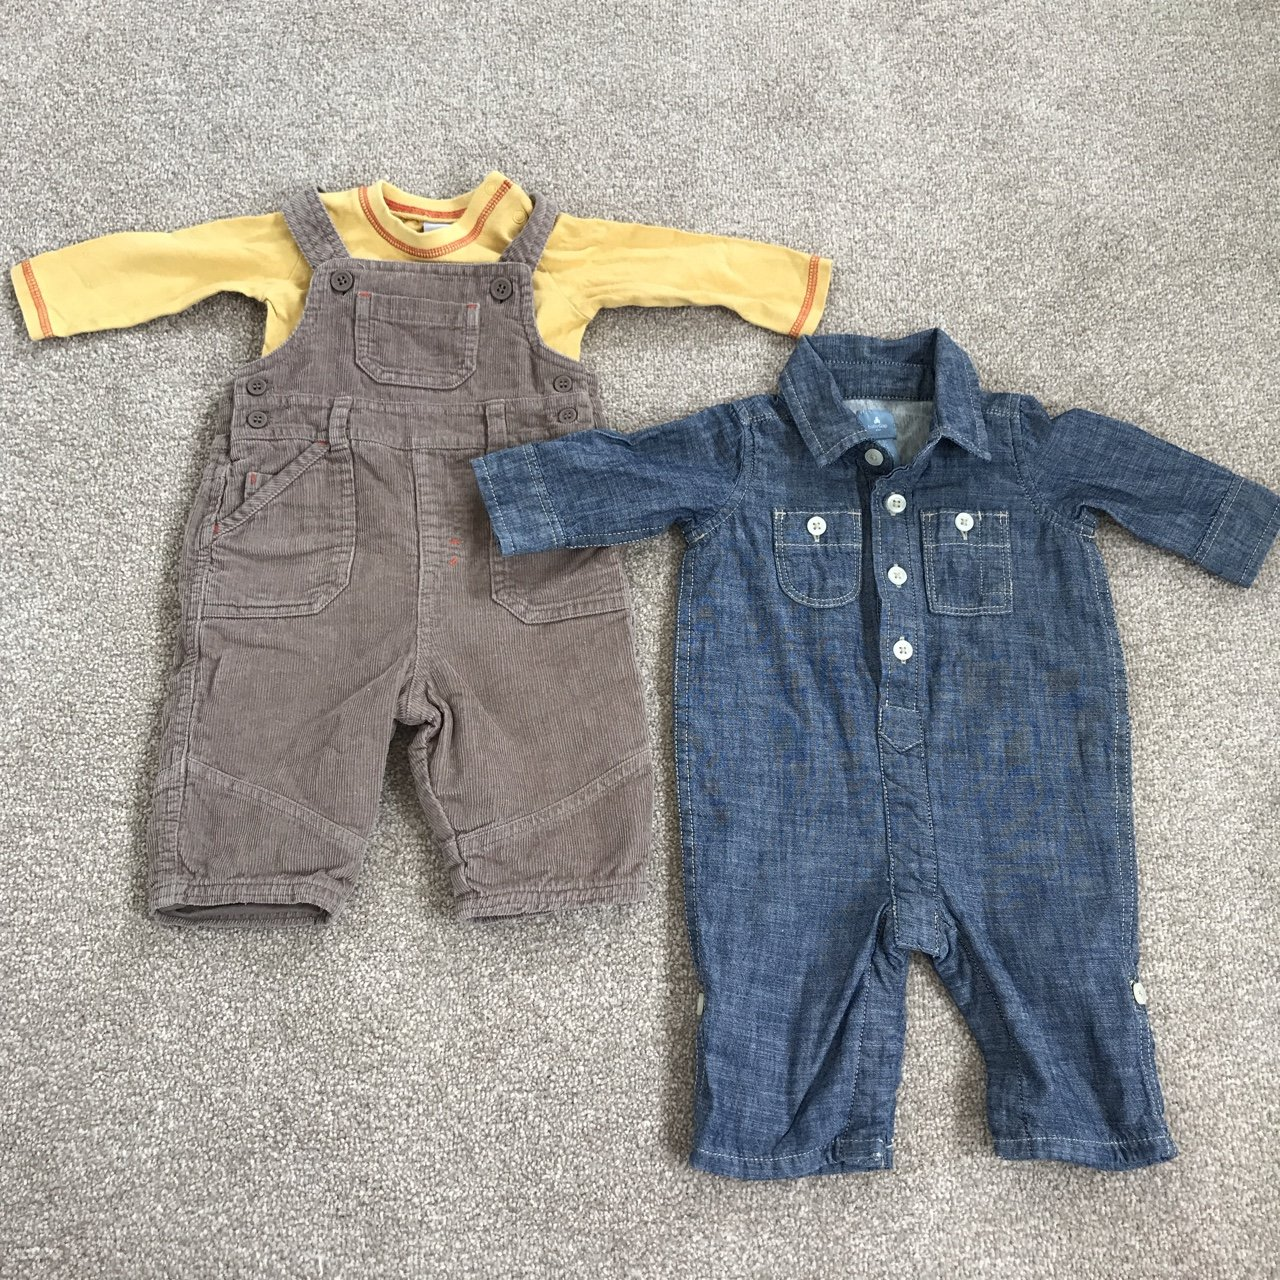 Outfits & Sets 0-3 Month Dungaree Outfit